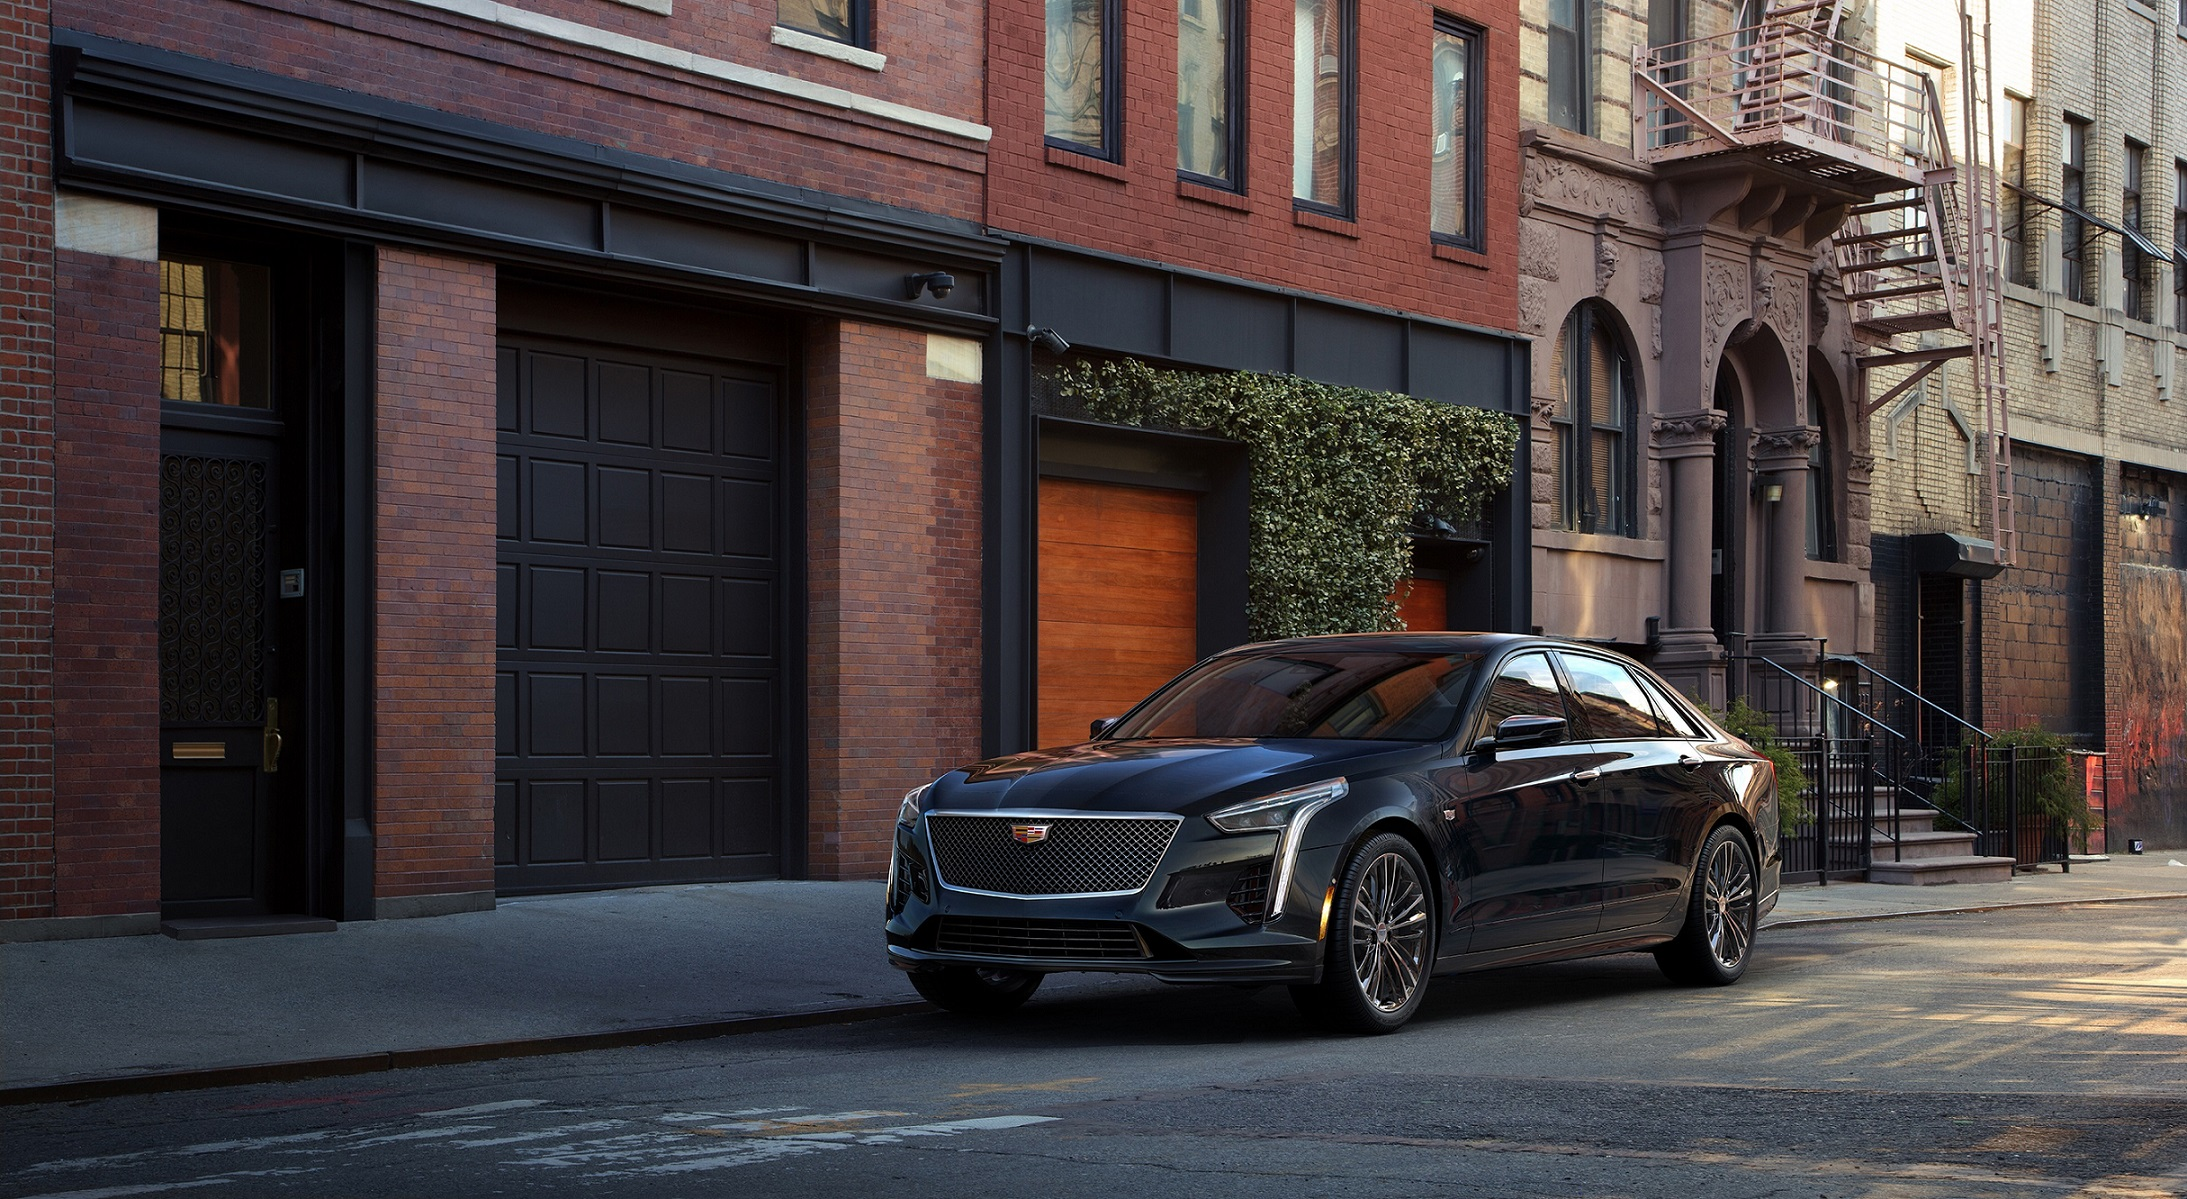 Cadillac Introduces First-Ever Twin-Turbo V-8 Engine